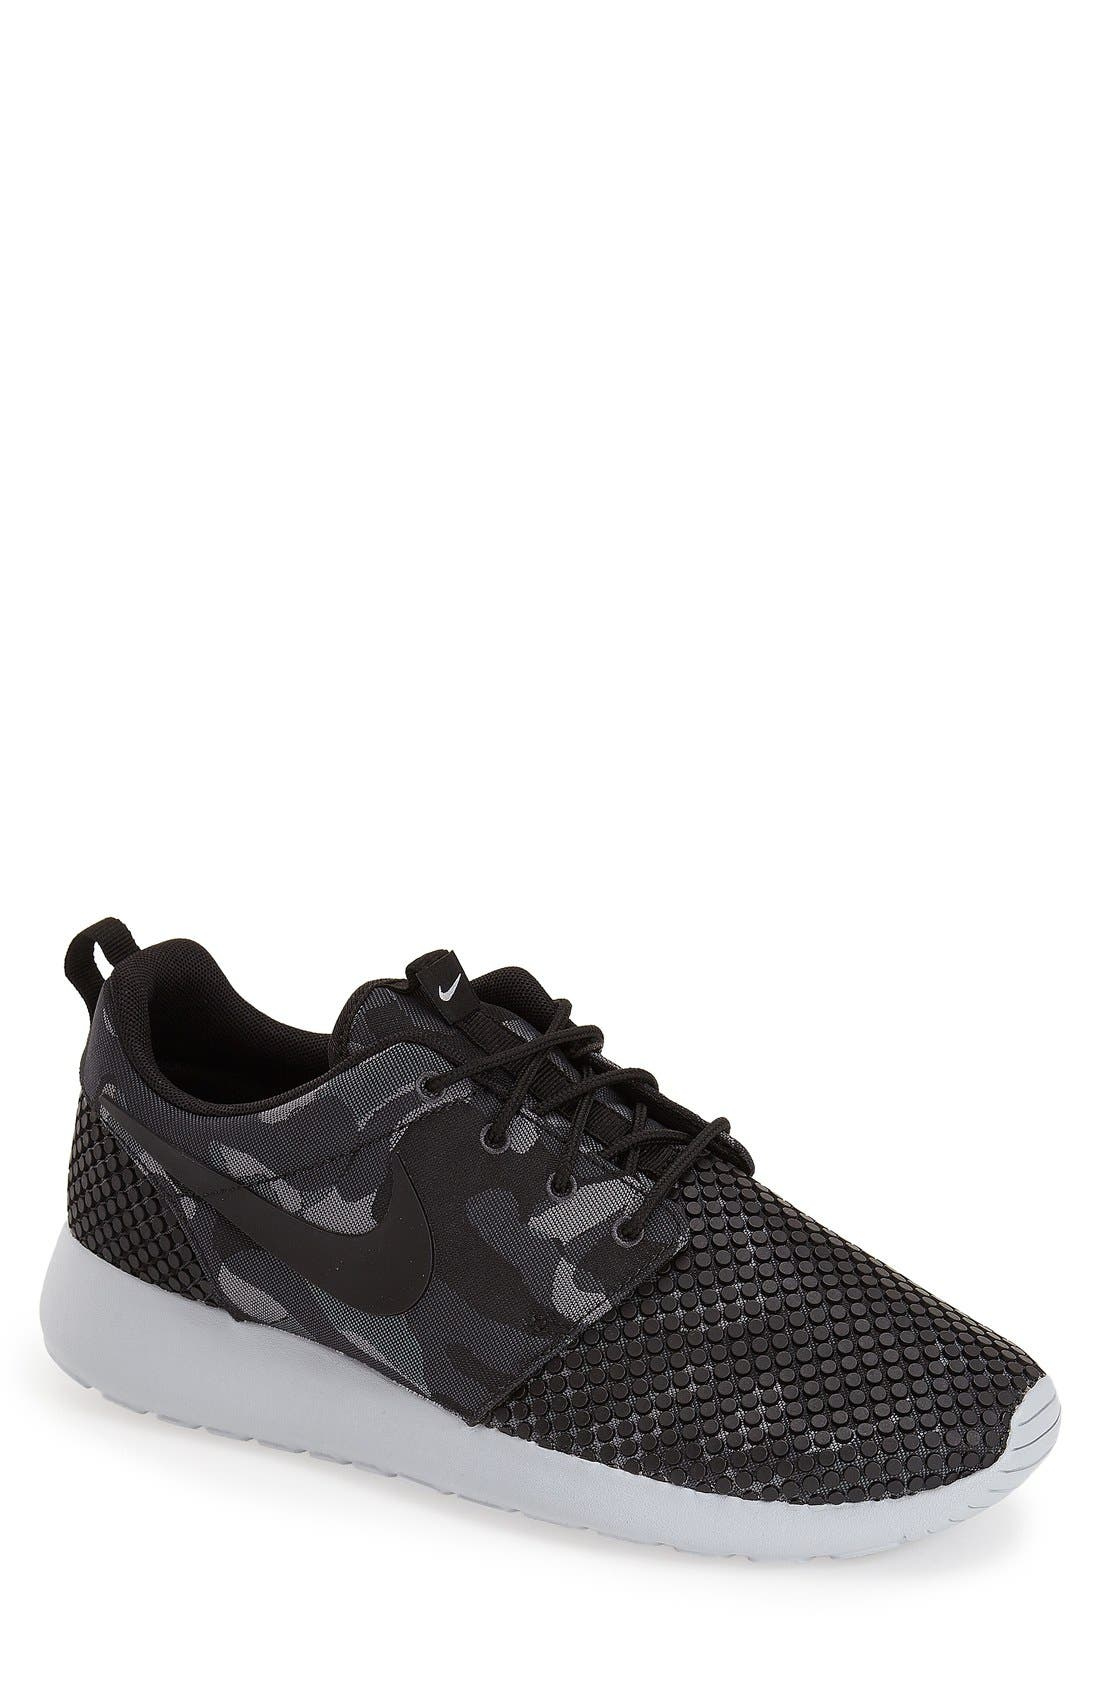 'Roshe One - Premium Plus' Sneaker, Main, color, 001